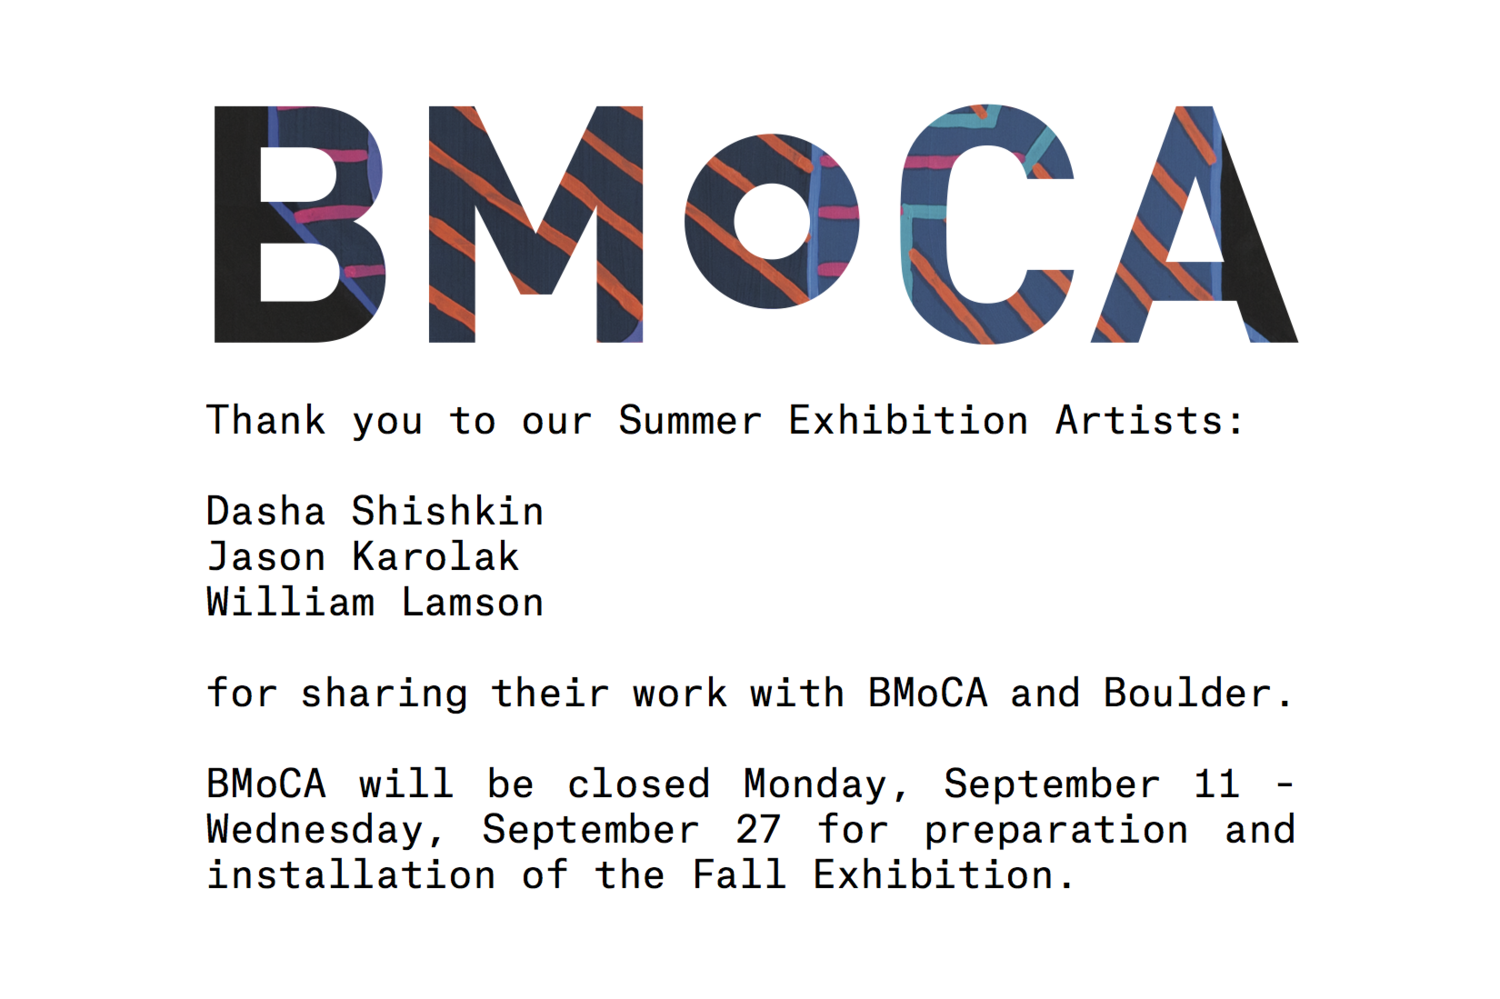 Thank_you_to_our_Summer_Exhibition_Artists.png